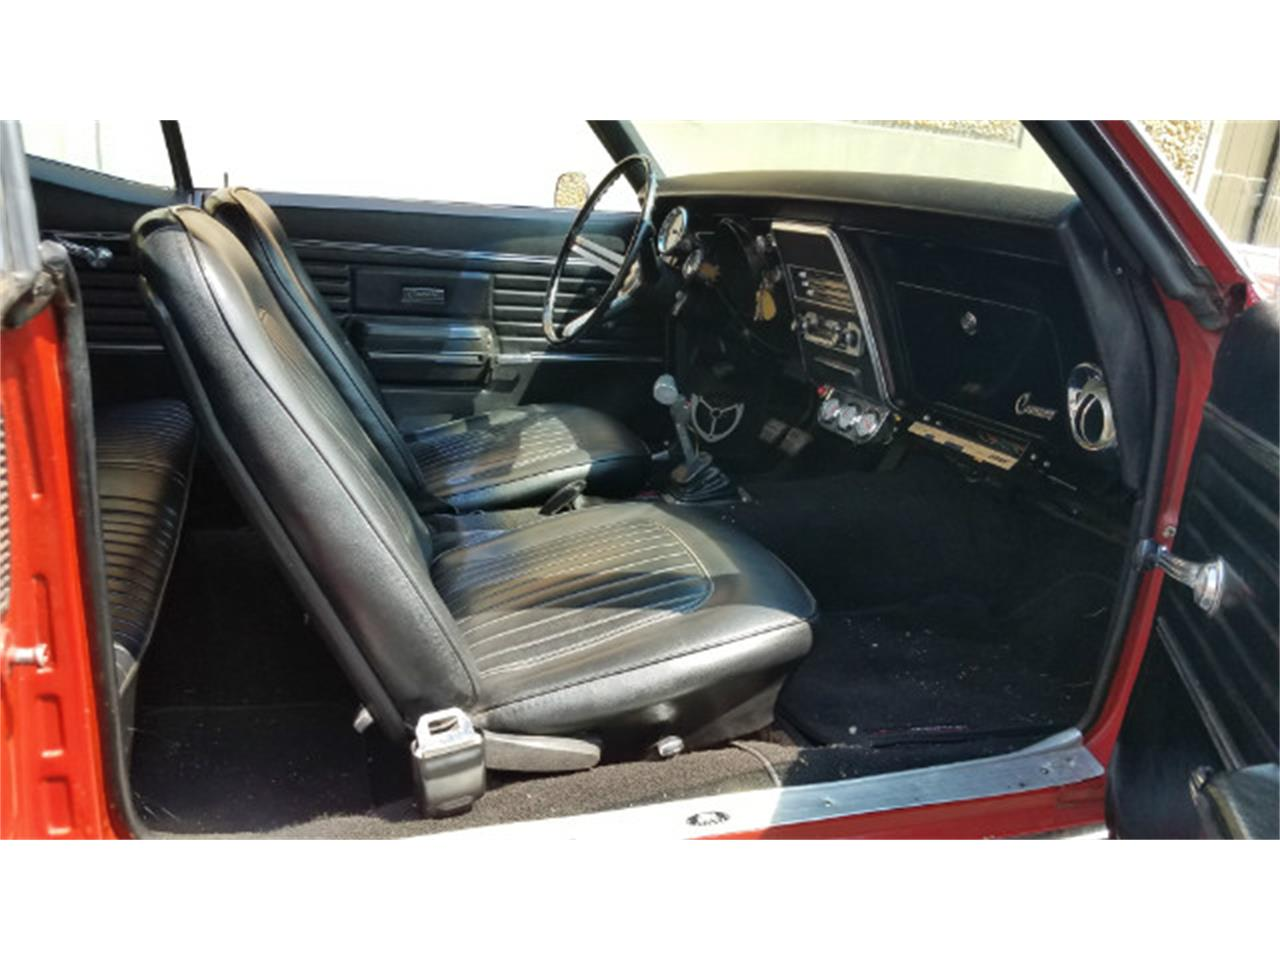 Large Picture of 1968 Camaro located in Linthicum Maryland Auction Vehicle Offered by Universal Auto Sales - MO88